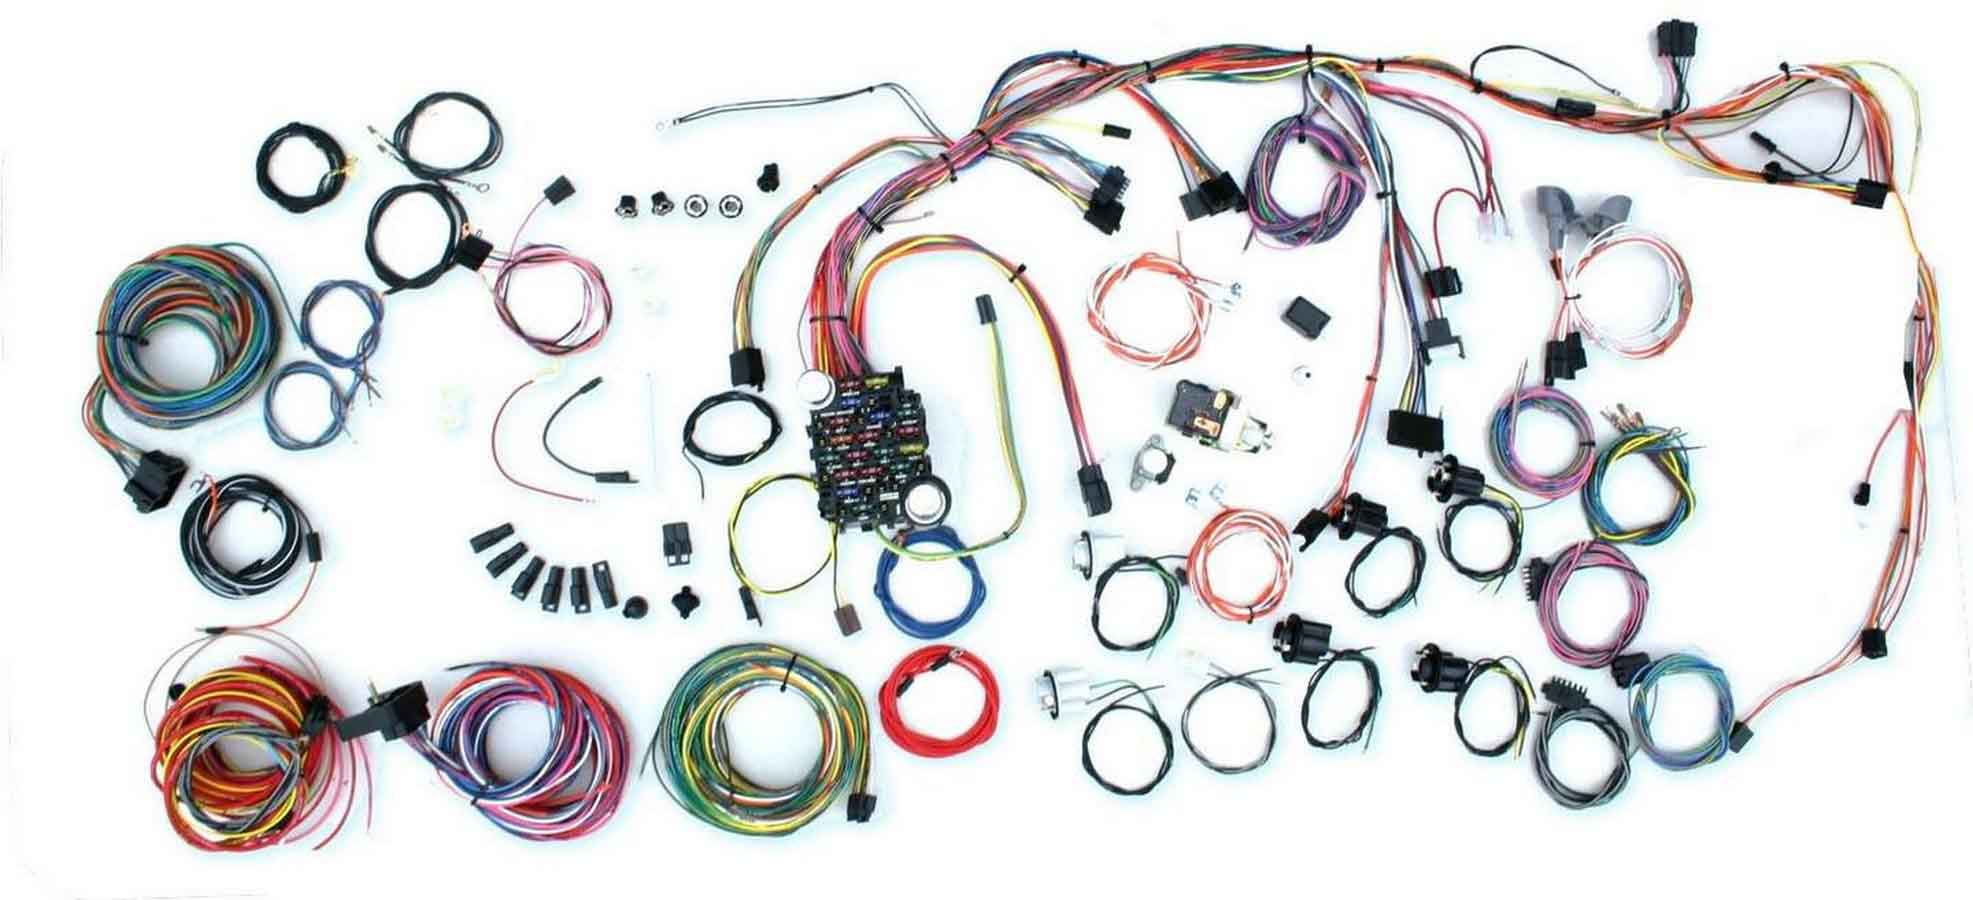 hight resolution of 69 camaro wire harness system